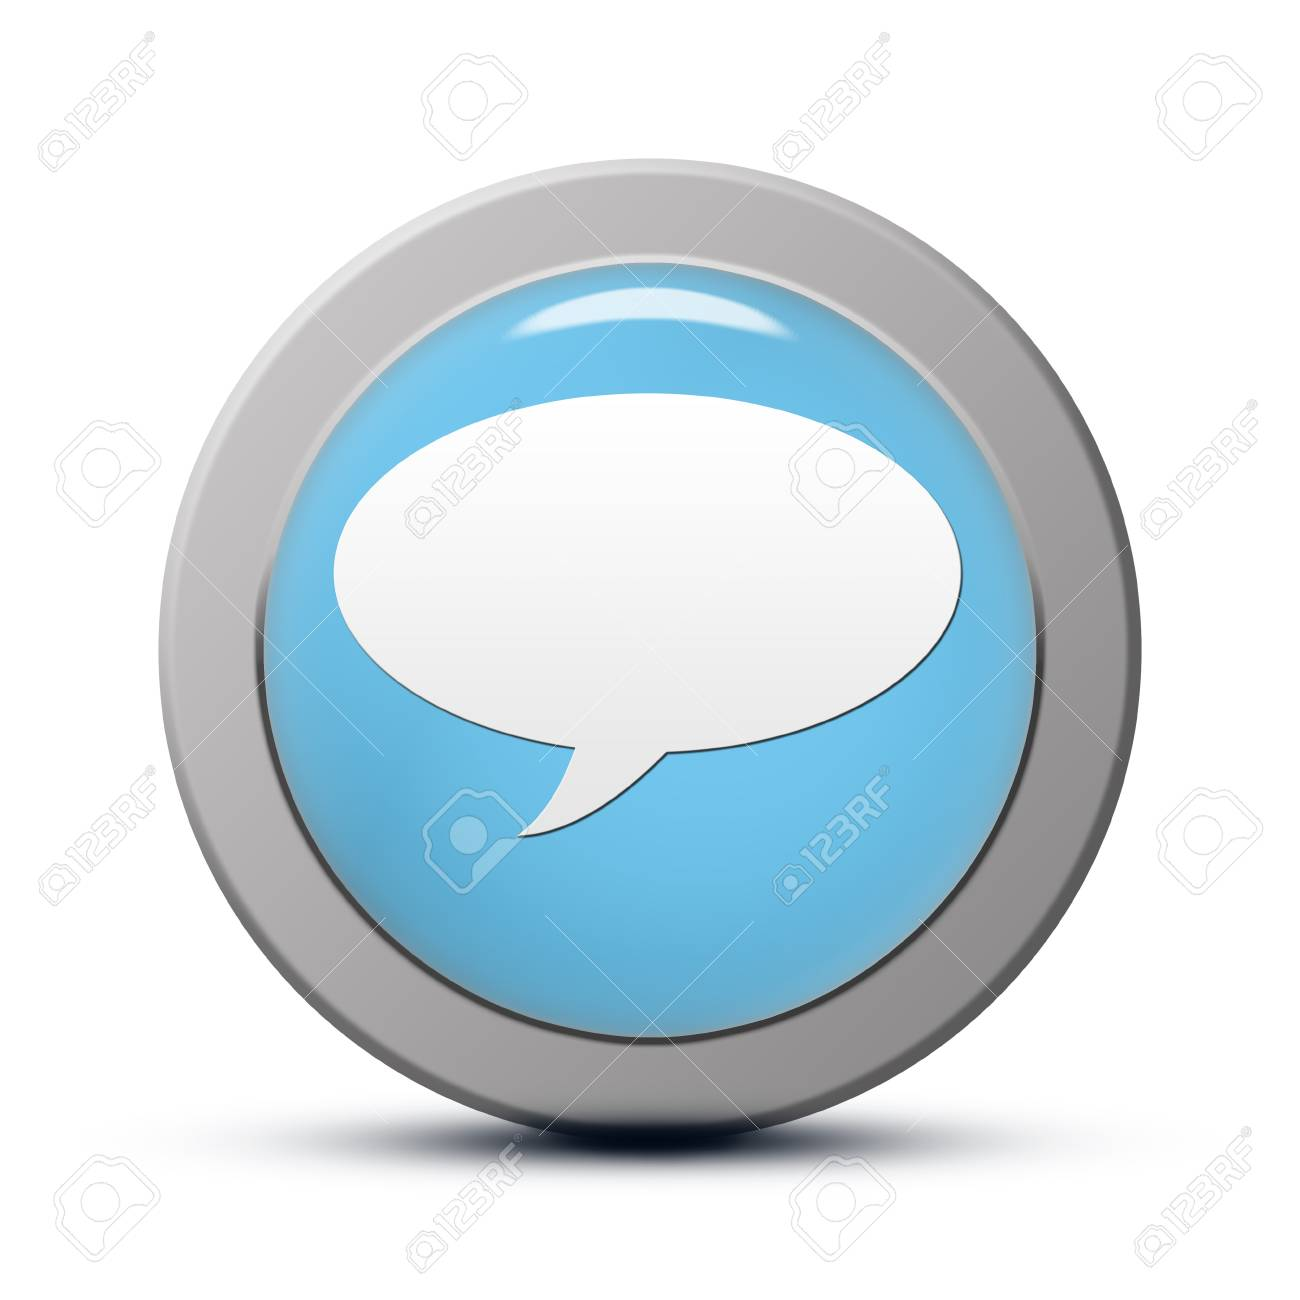 blue round Icon series : chat button Stock Photo - 20010535